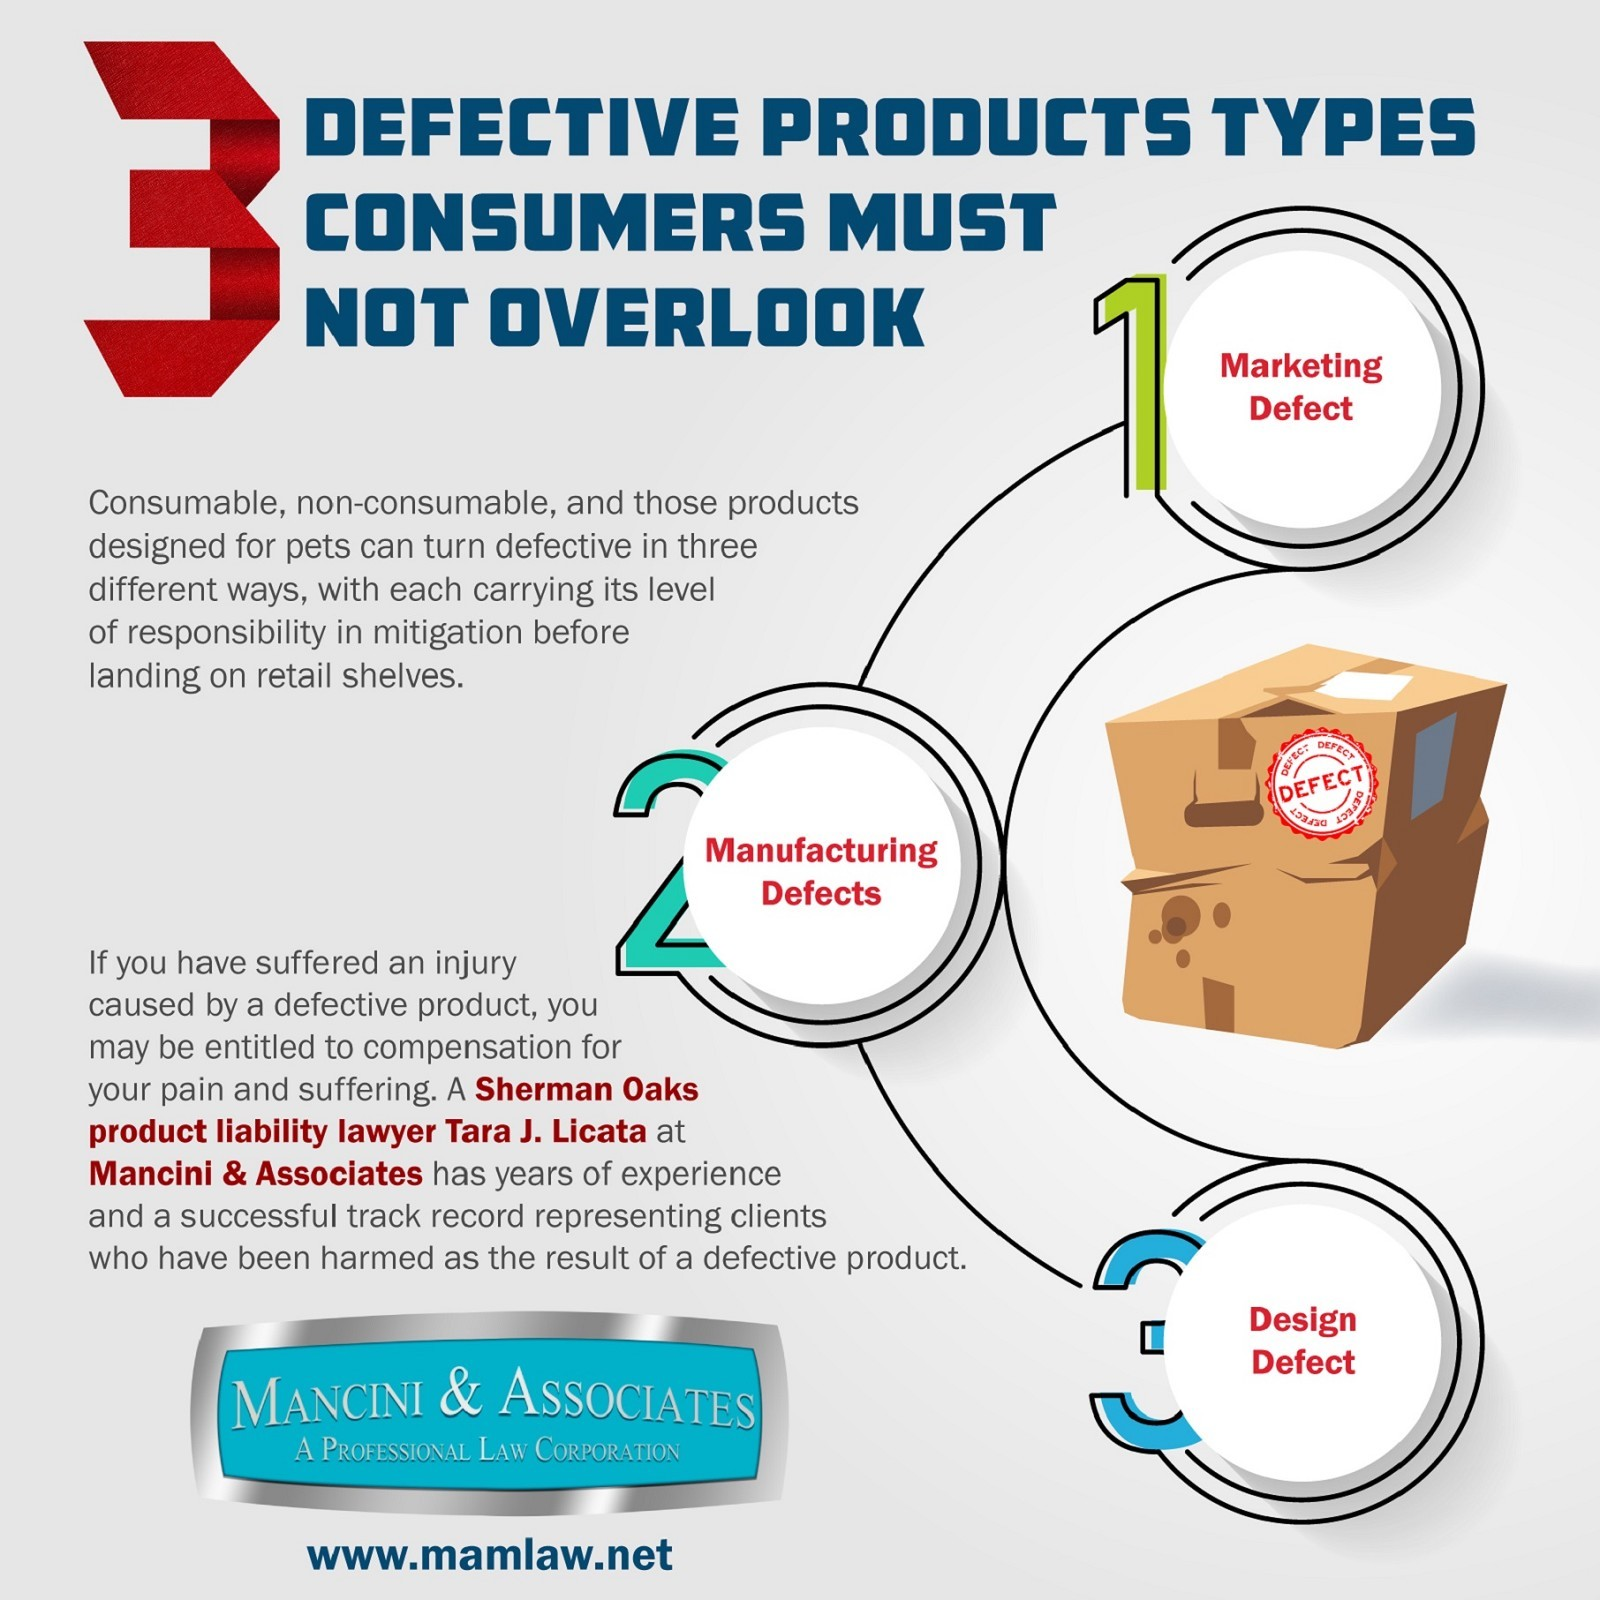 Some Defective Products Types Consumers Must Not Overlook